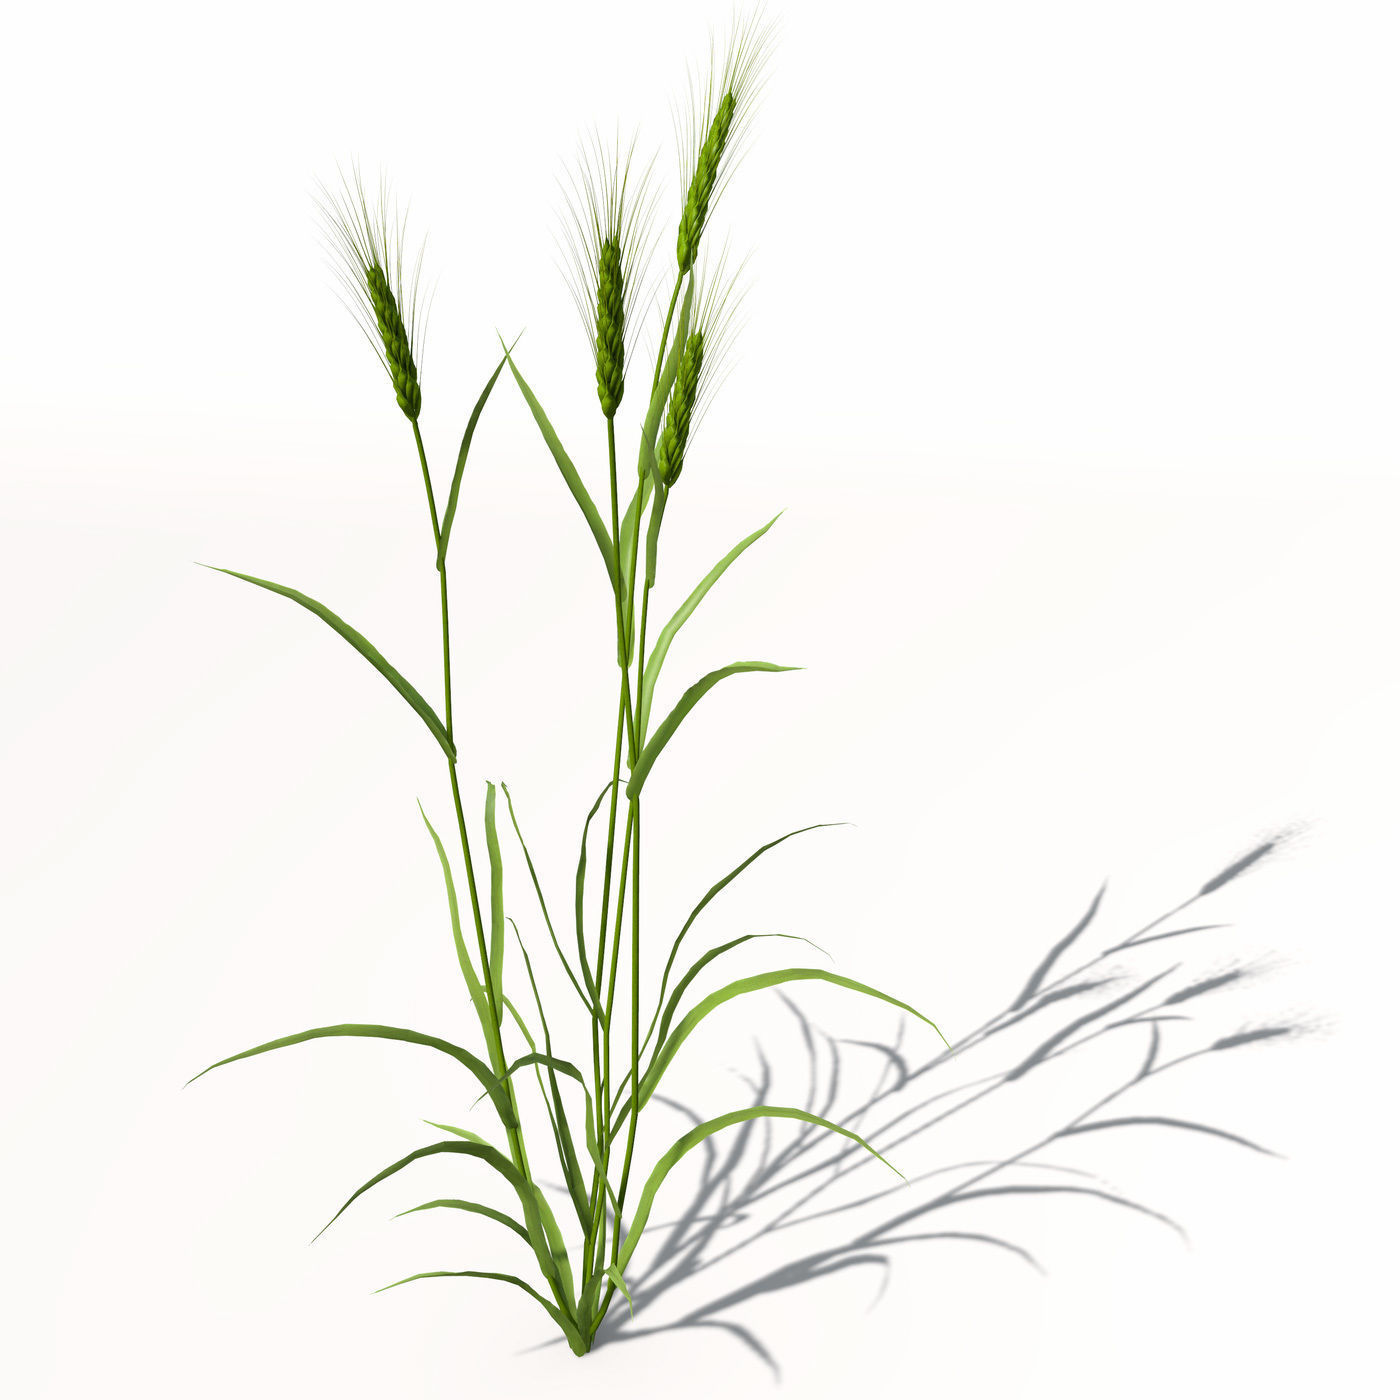 wheat plant drawing at getdrawings com free for personal use wheat